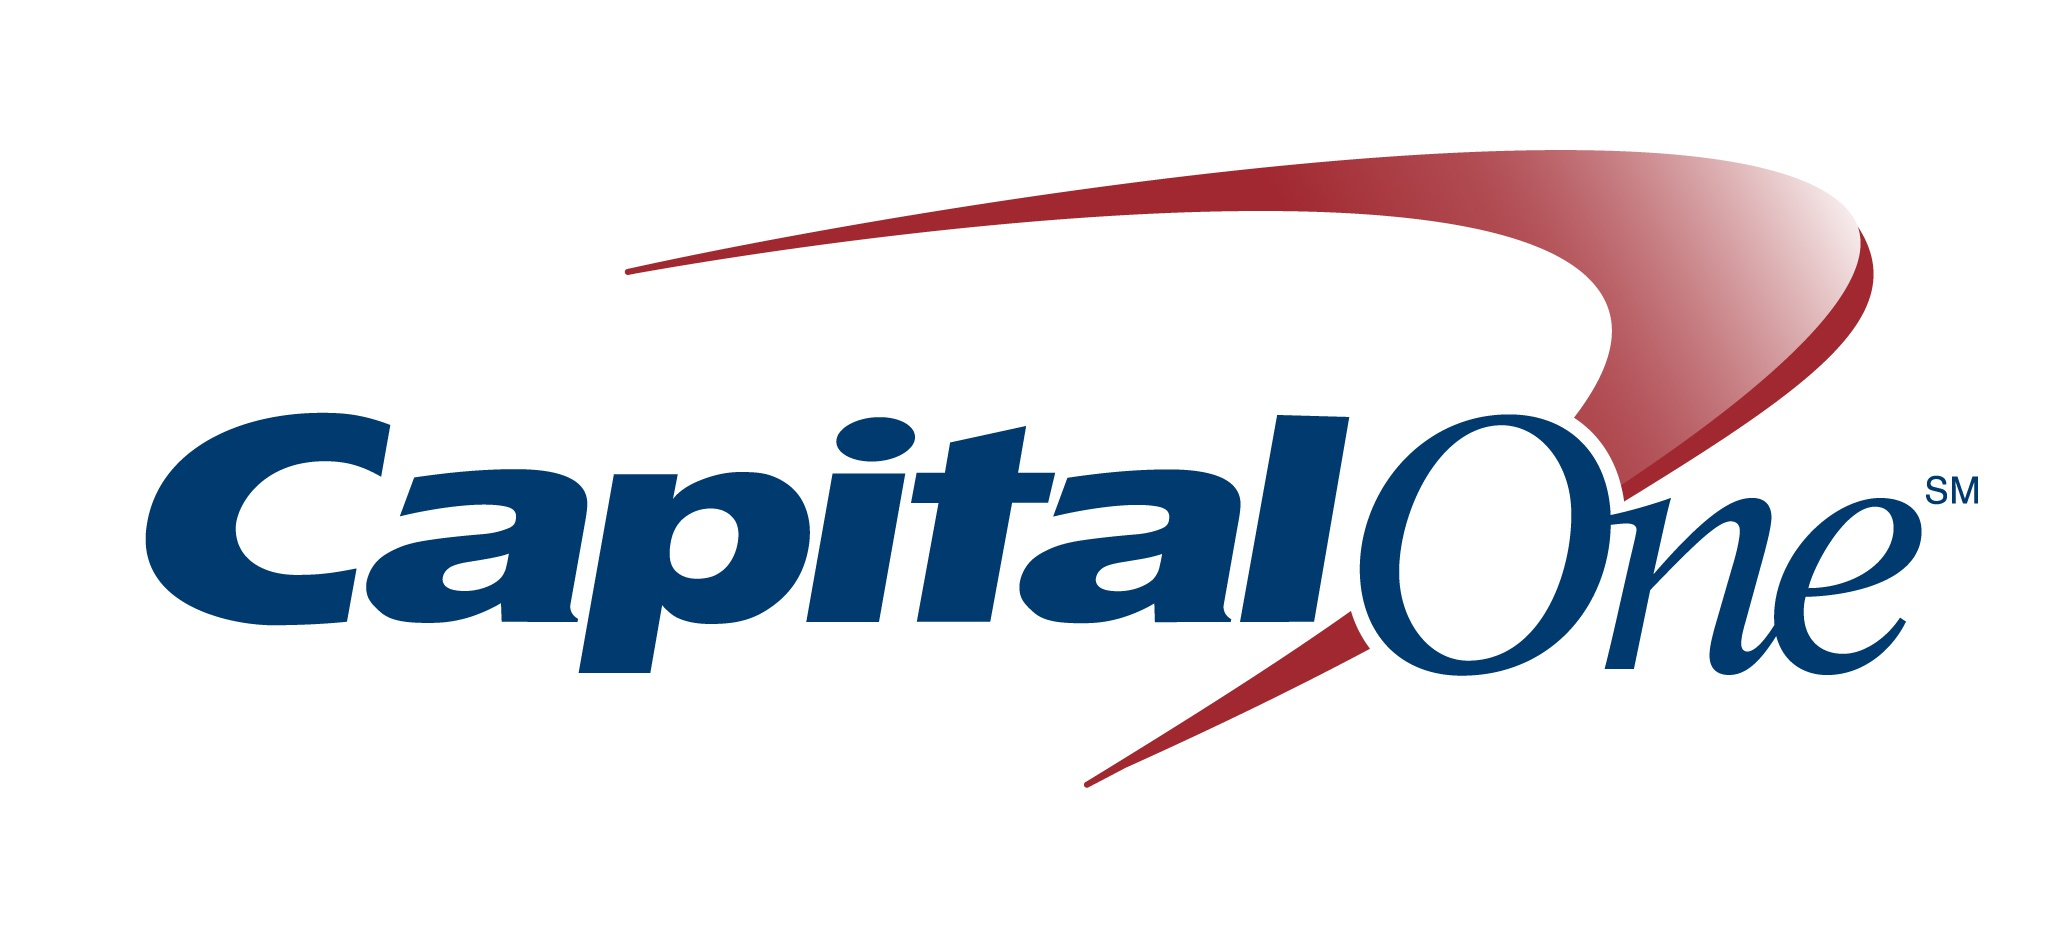 Neiman marcus credit card - Capital One And Neiman Marcus Announce Extended Contract For Private Label Credit Card Business Wire